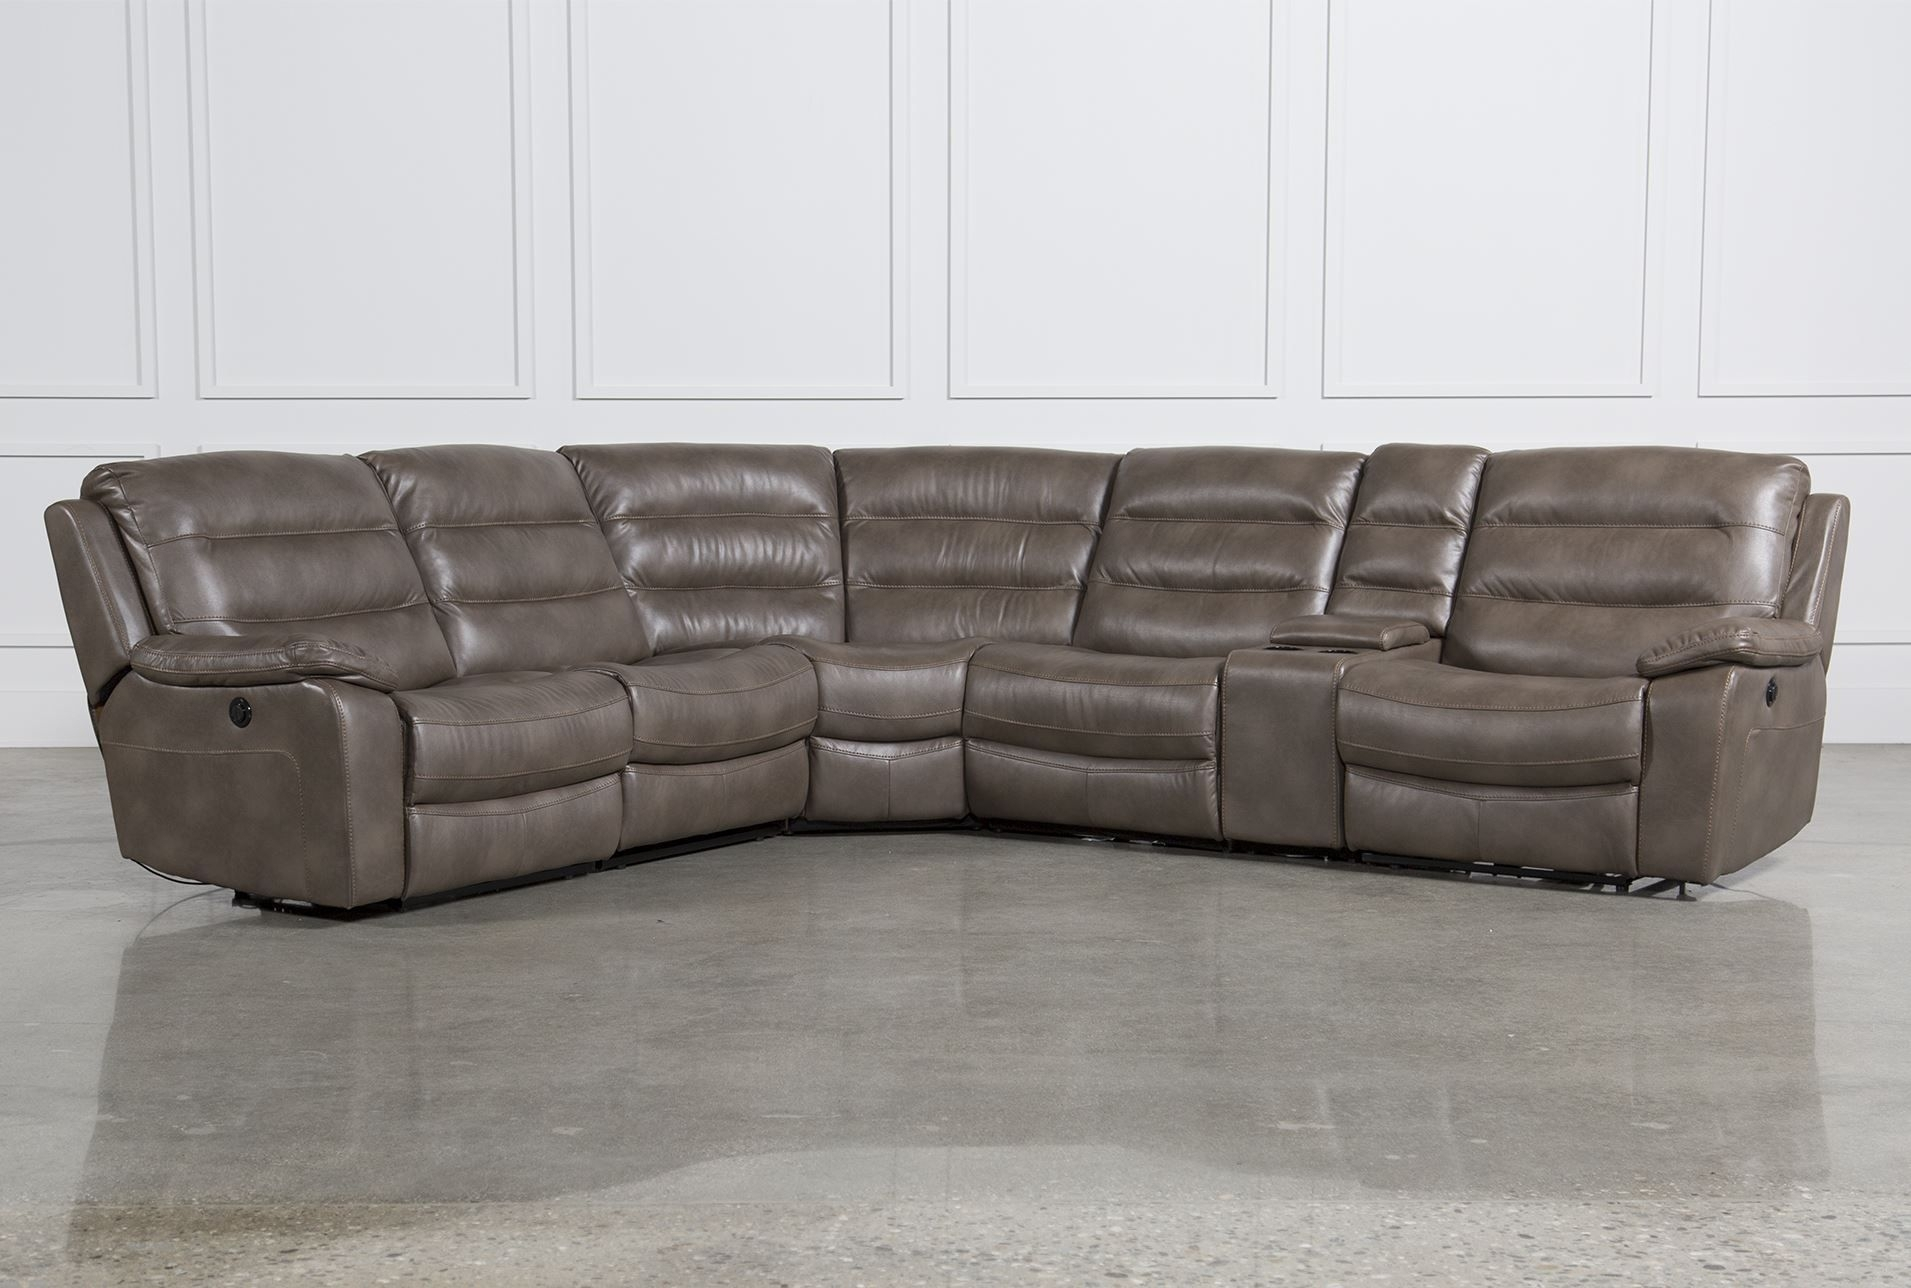 Lachlan 6 Piece Sectional | Home Sweet Home | Pinterest Intended For Kristen Silver Grey 6 Piece Power Reclining Sectionals (View 7 of 25)